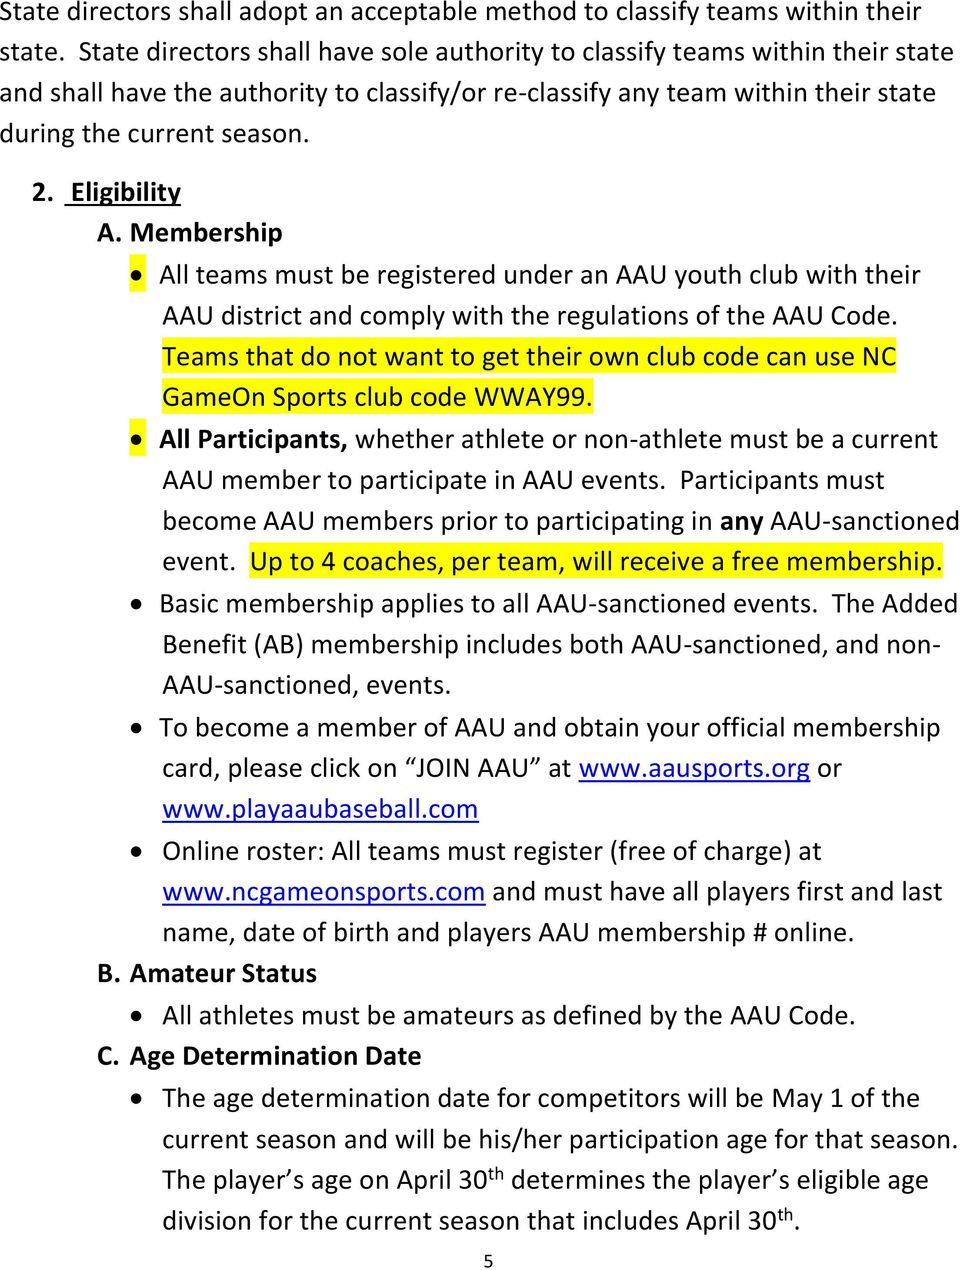 Eligibility A. Membership All teams must be registered under an AAU youth club with their AAU district and comply with the regulations of the AAU Code.